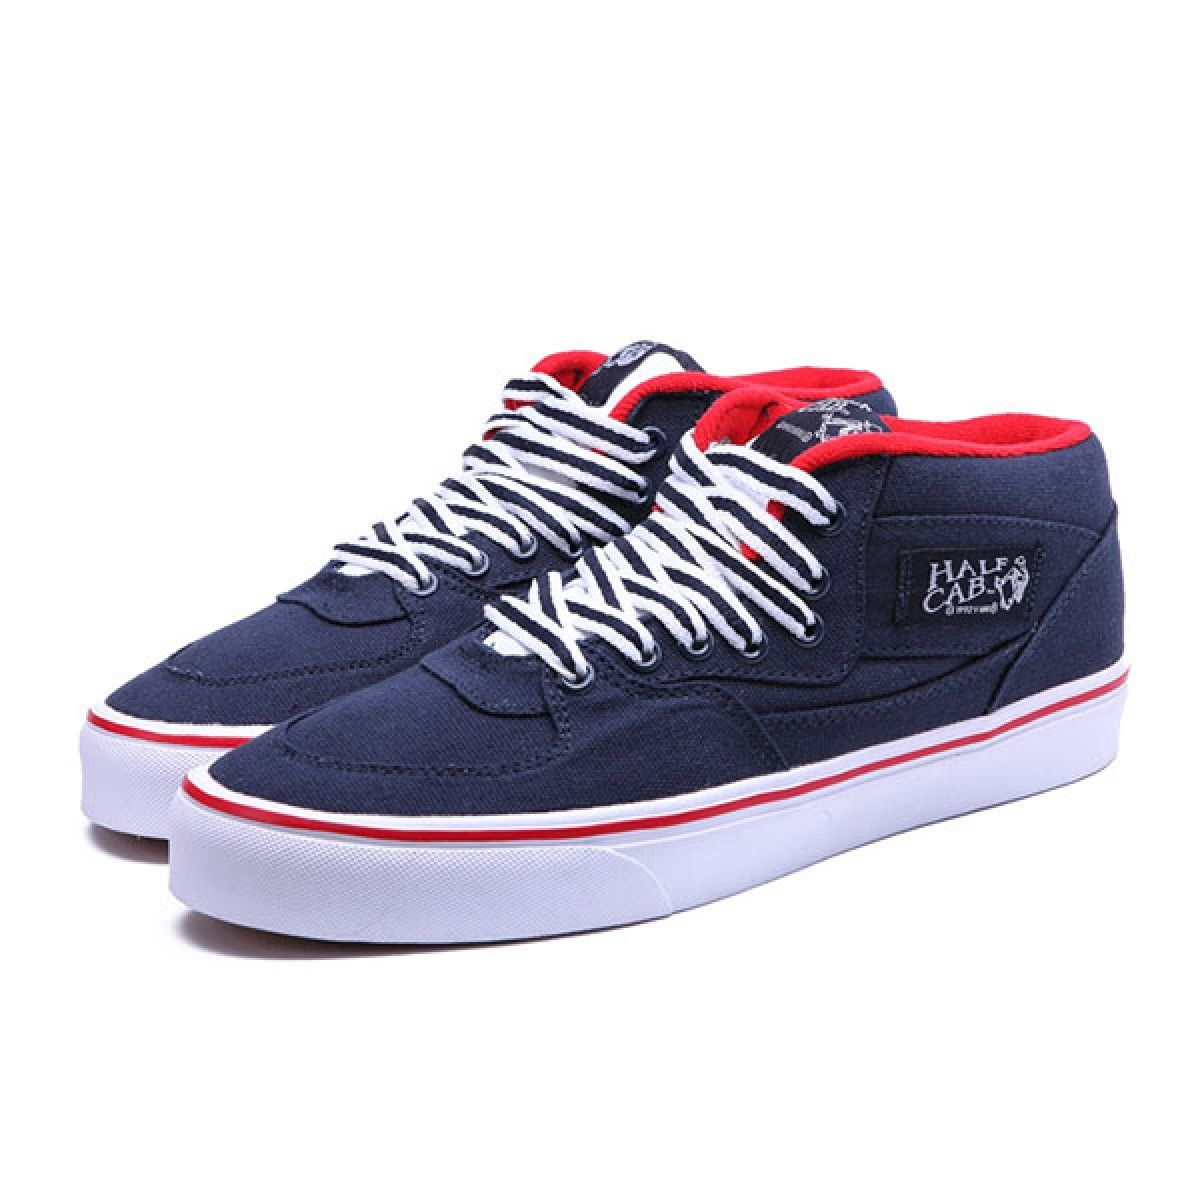 98f0bc9b84 Vans Shoes Navy Blue(Red) Classic Half Cab Shoes Mens Classic Canvas ...